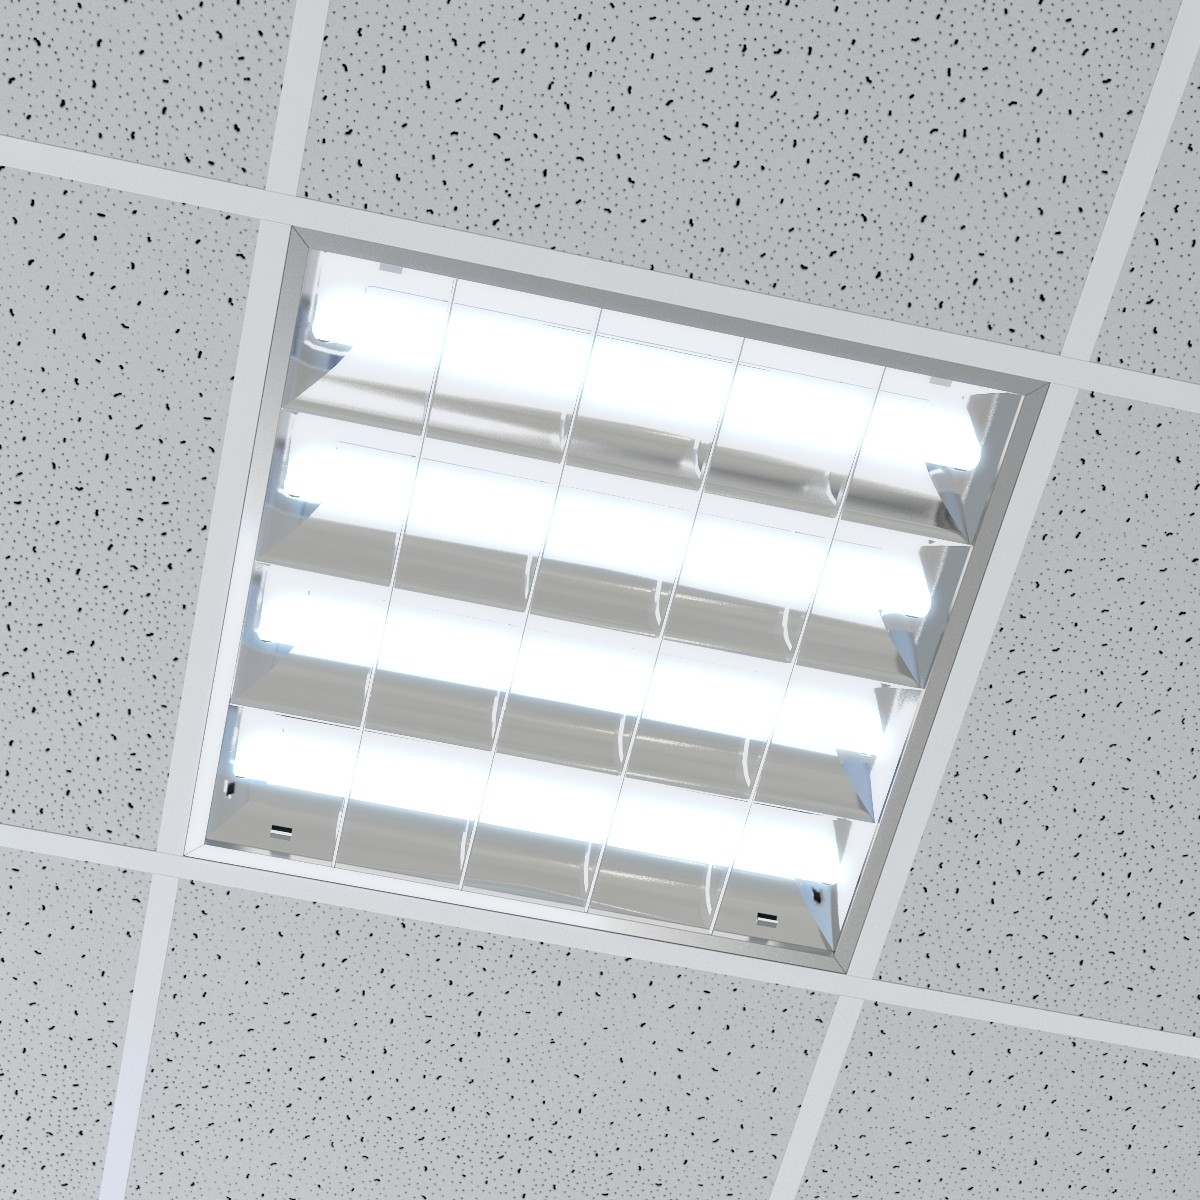 Where Are You Supposed To Put Your Ceiling Office Lights?